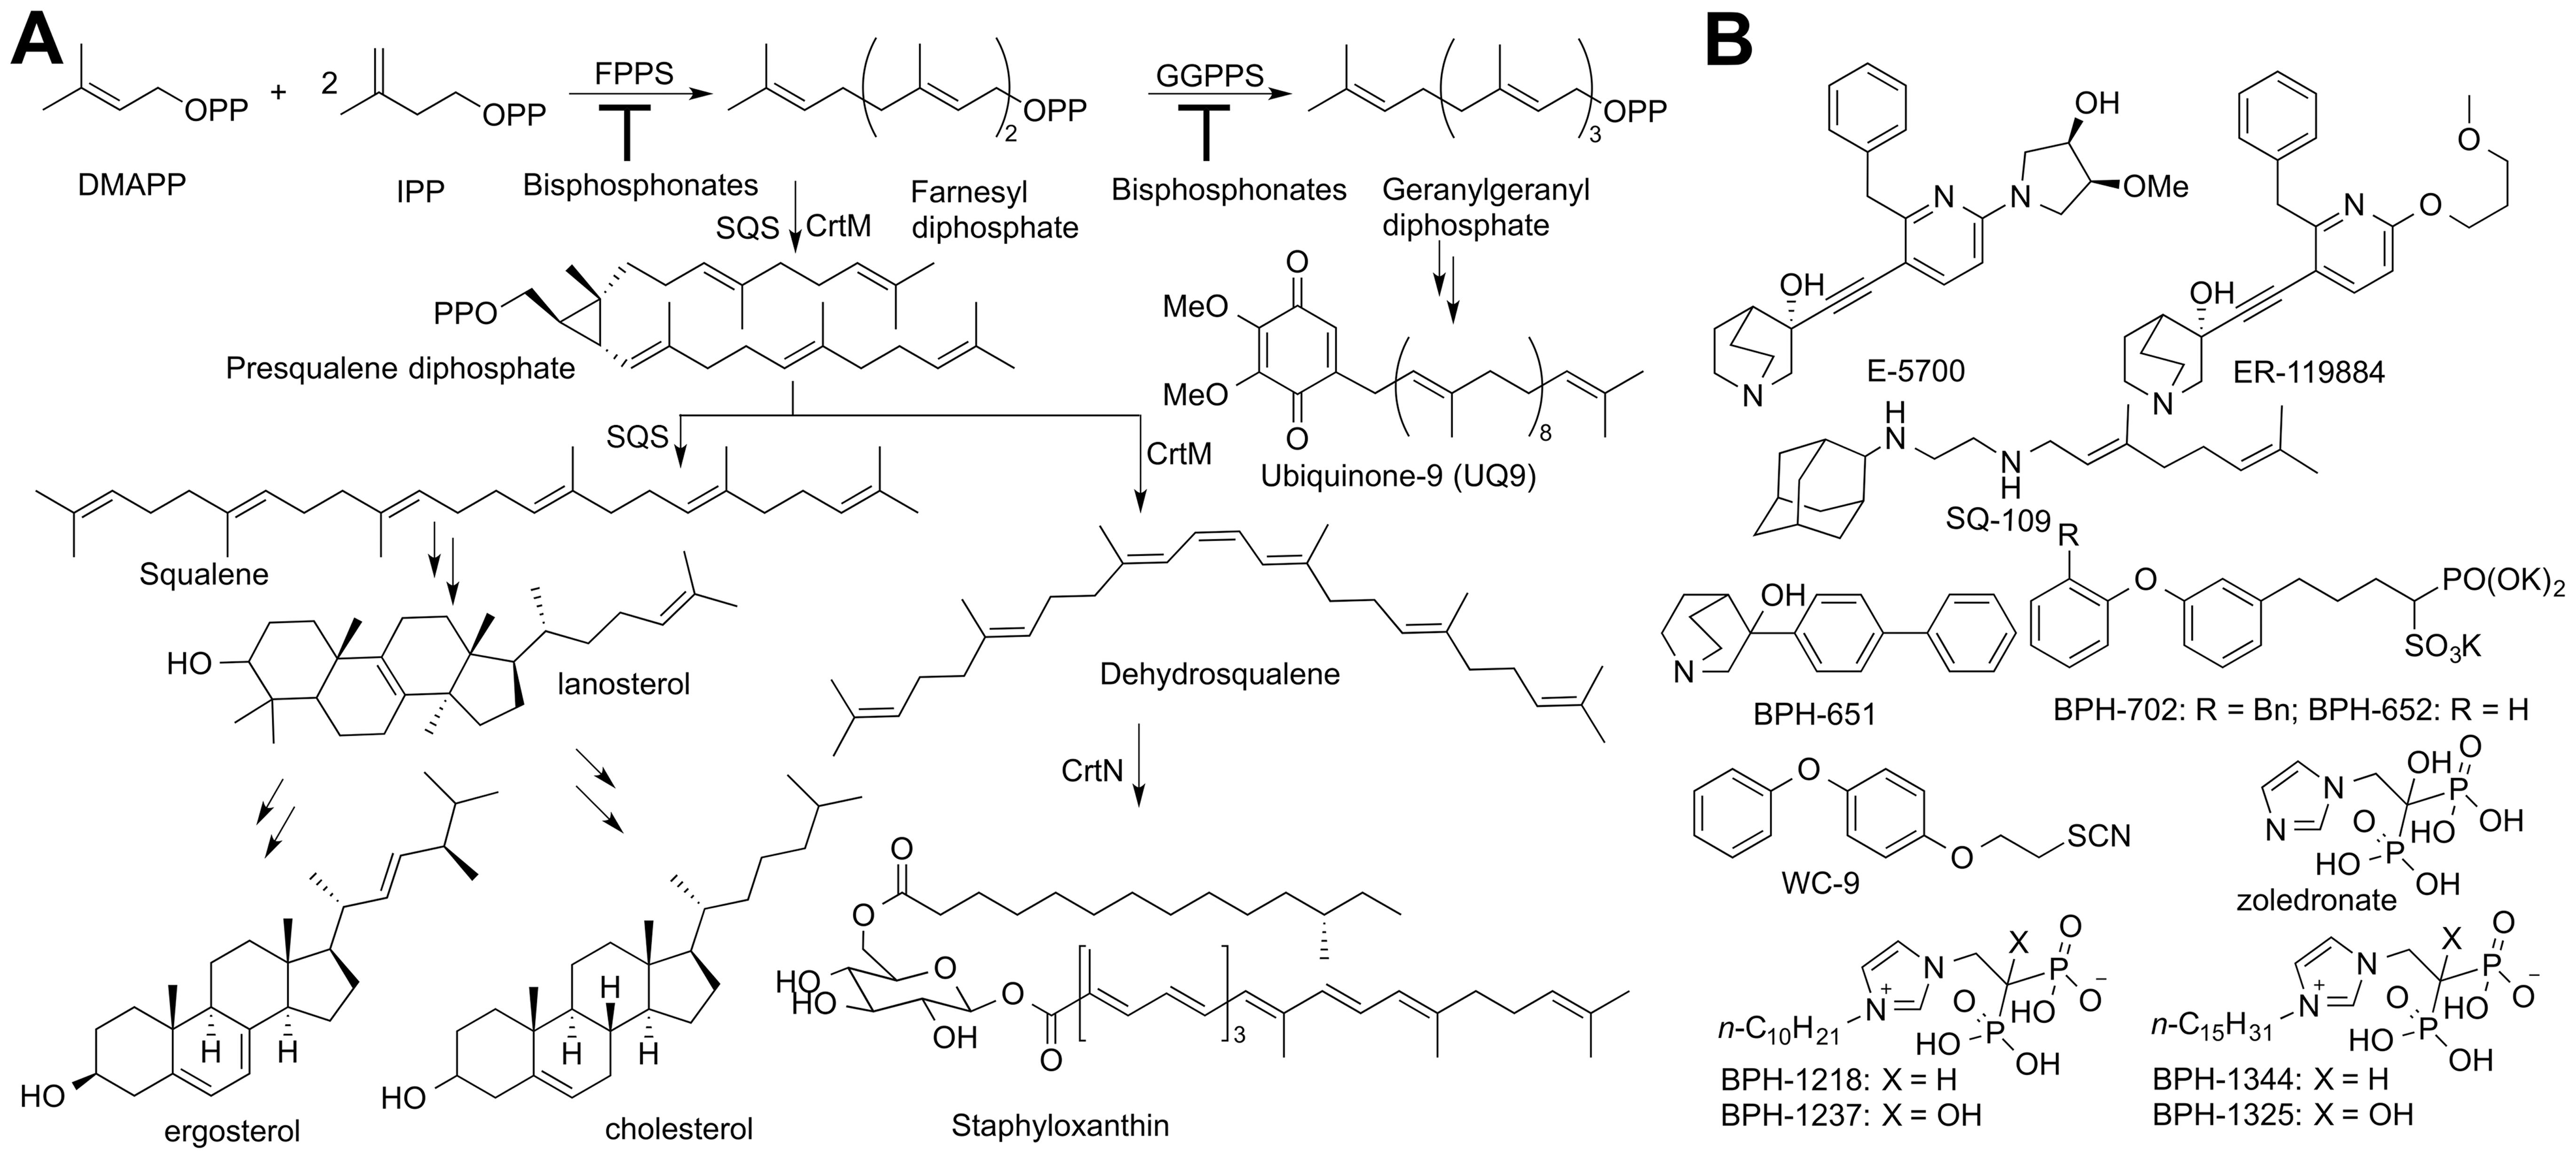 Biosynthetic pathways and structures of inhibitors.